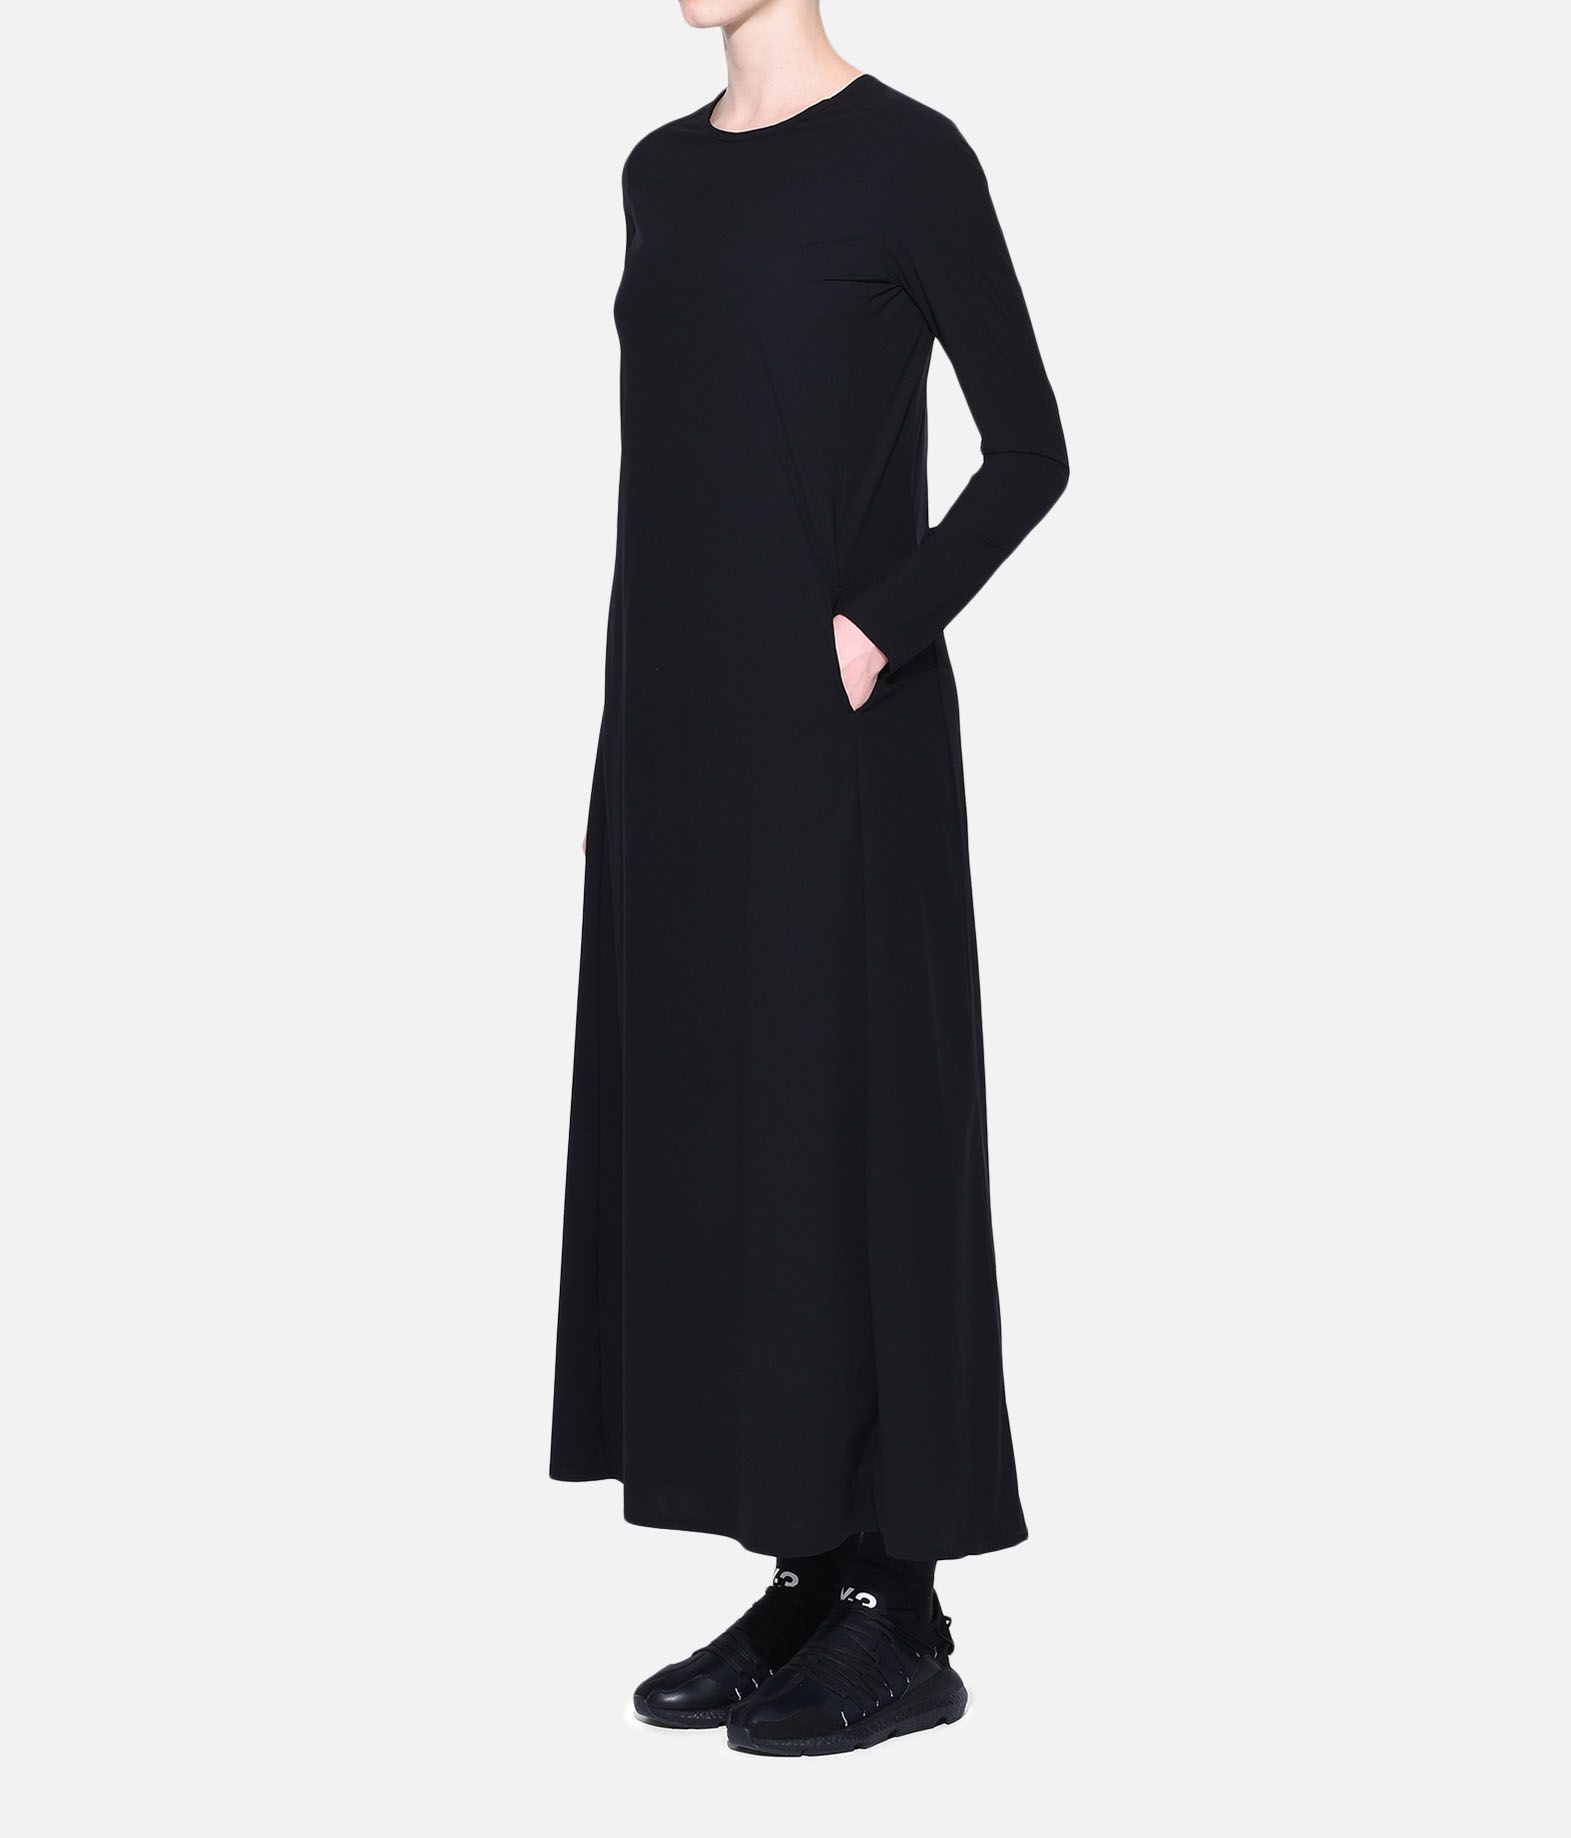 Y-3 Y-3 Stacked Logo Dress Long dress Woman e